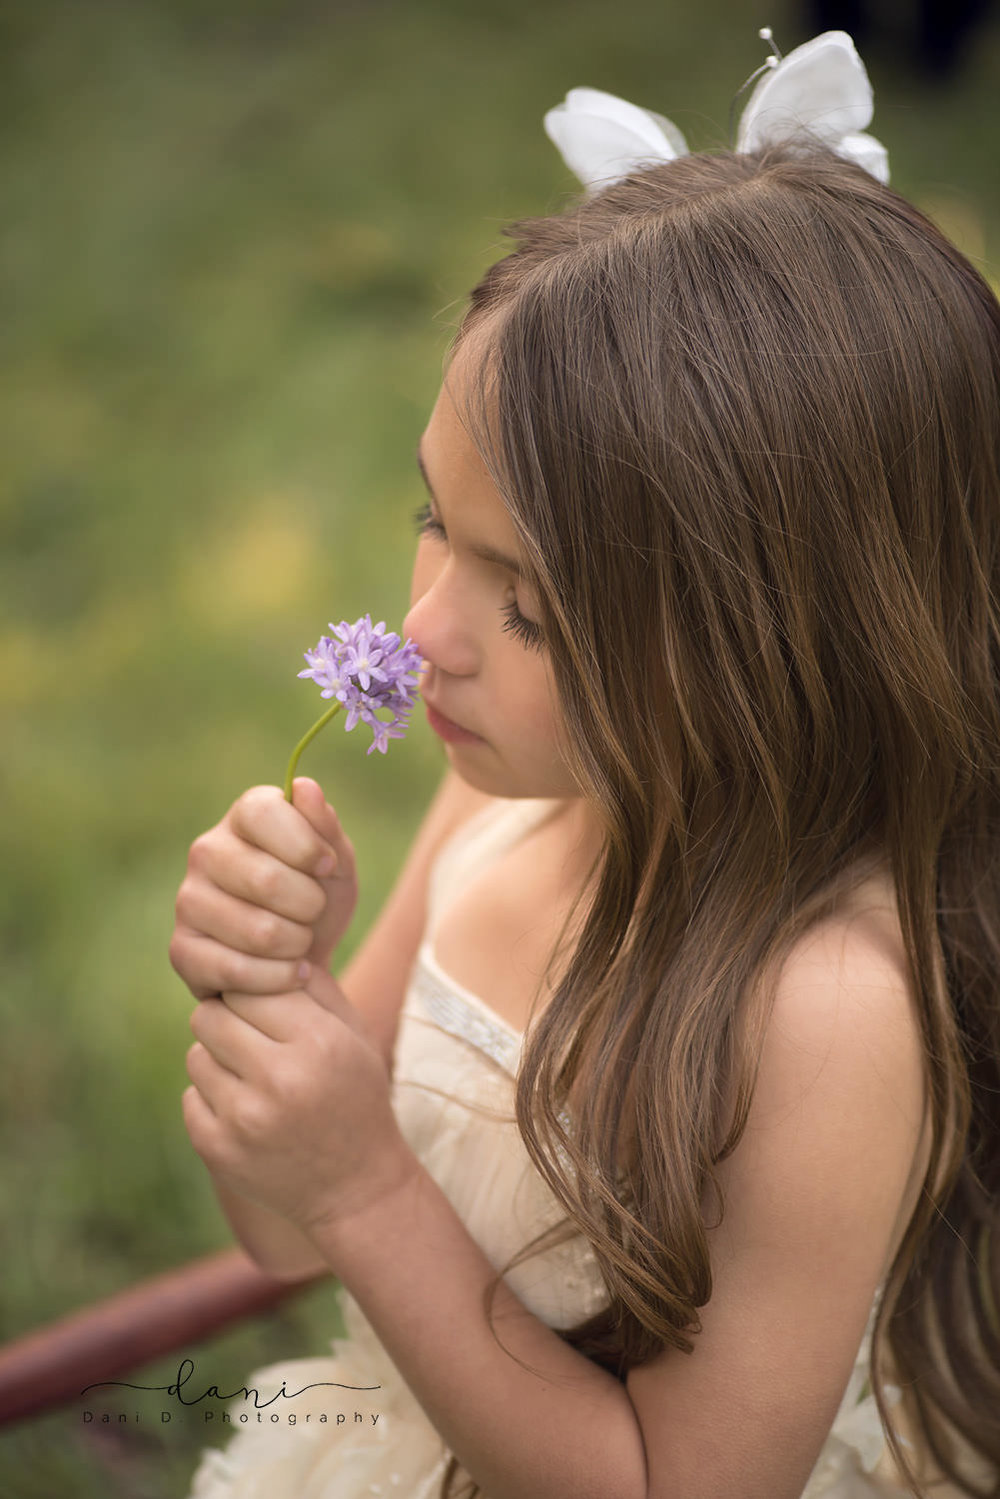 Girl smelling a purple flower - Northern California child and family photographer